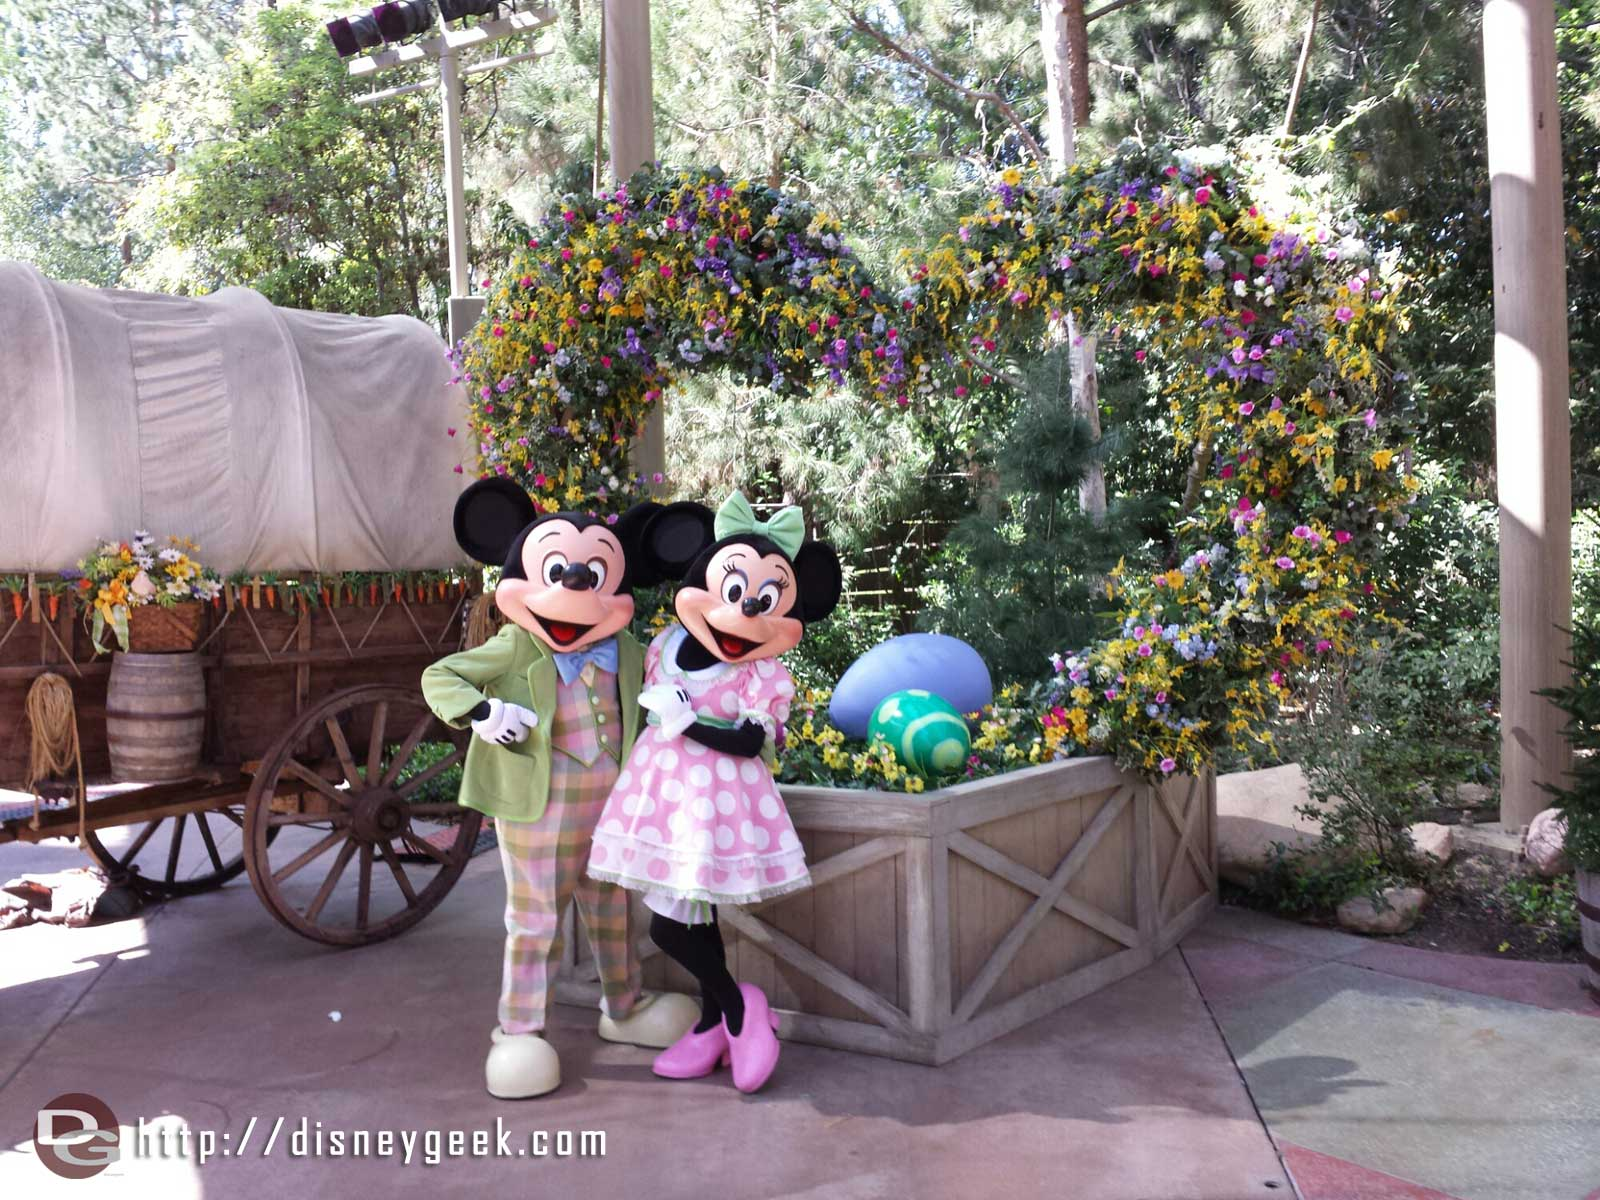 Mickey and Minnie at the Springtime Roundup